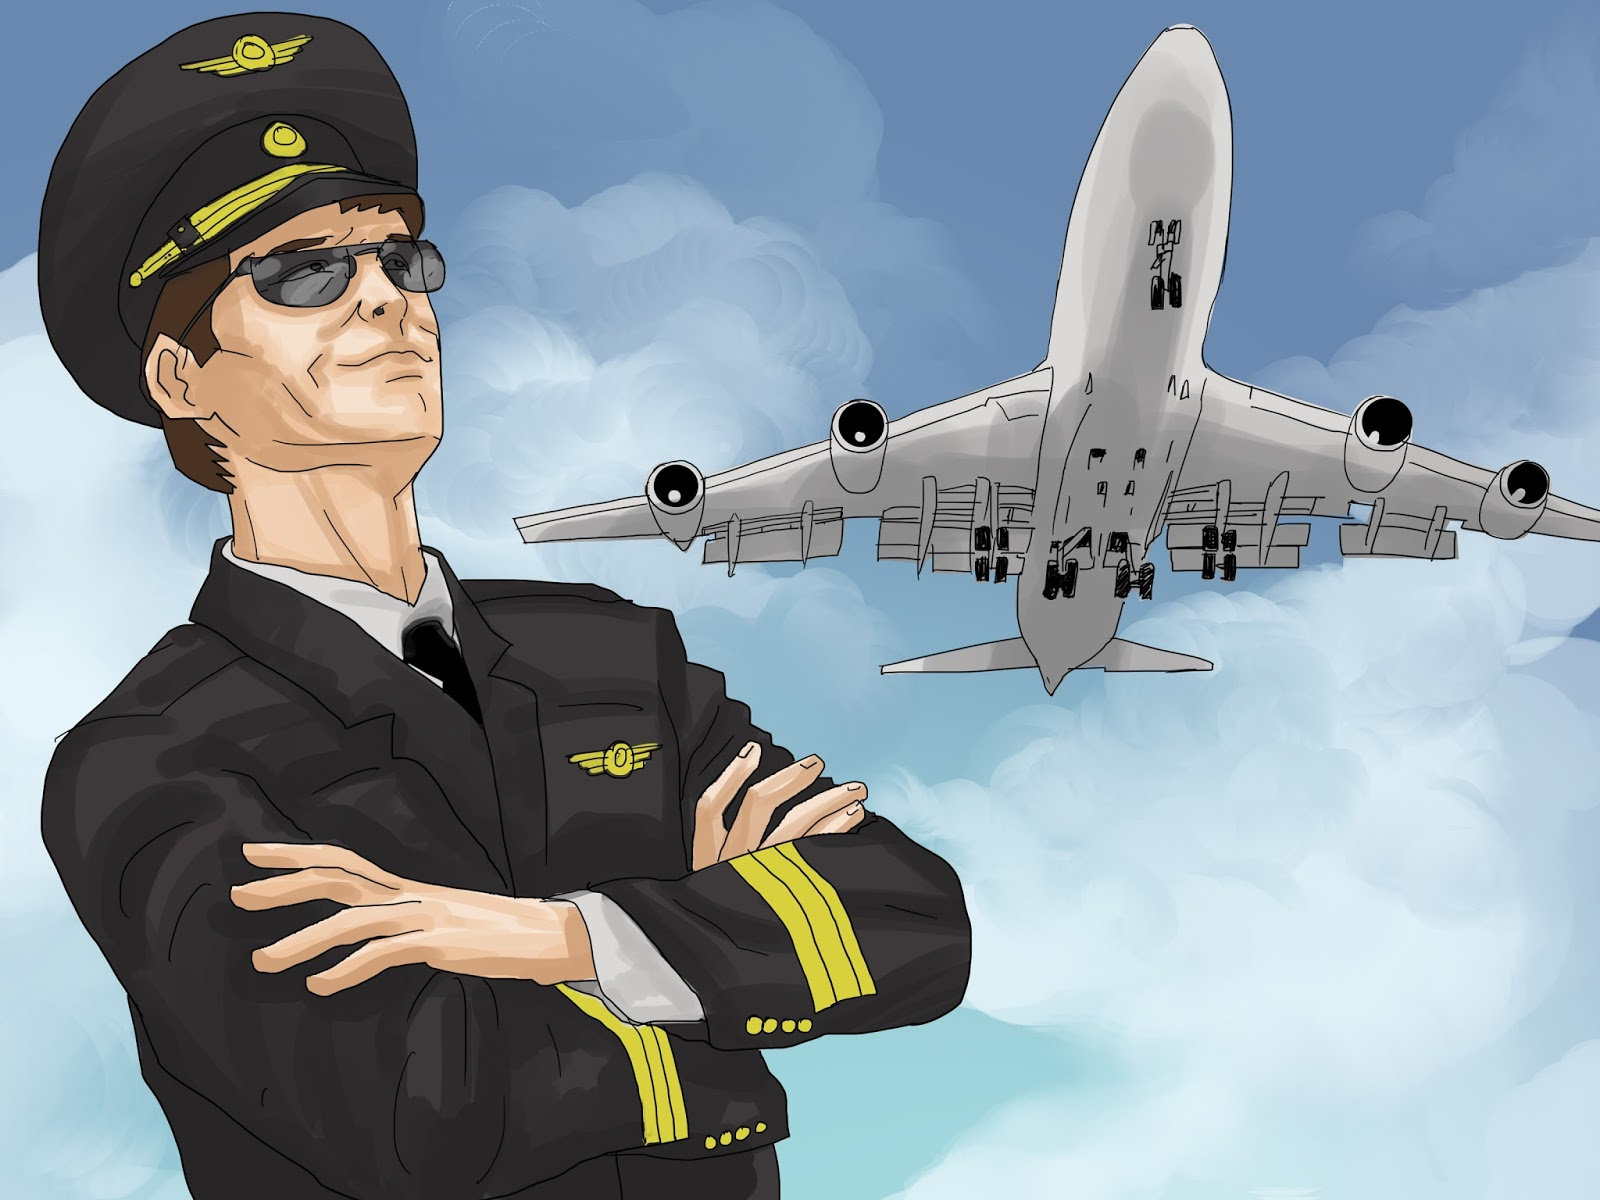 Words By Vk How To Become A Commercial Pilot A Short Guide